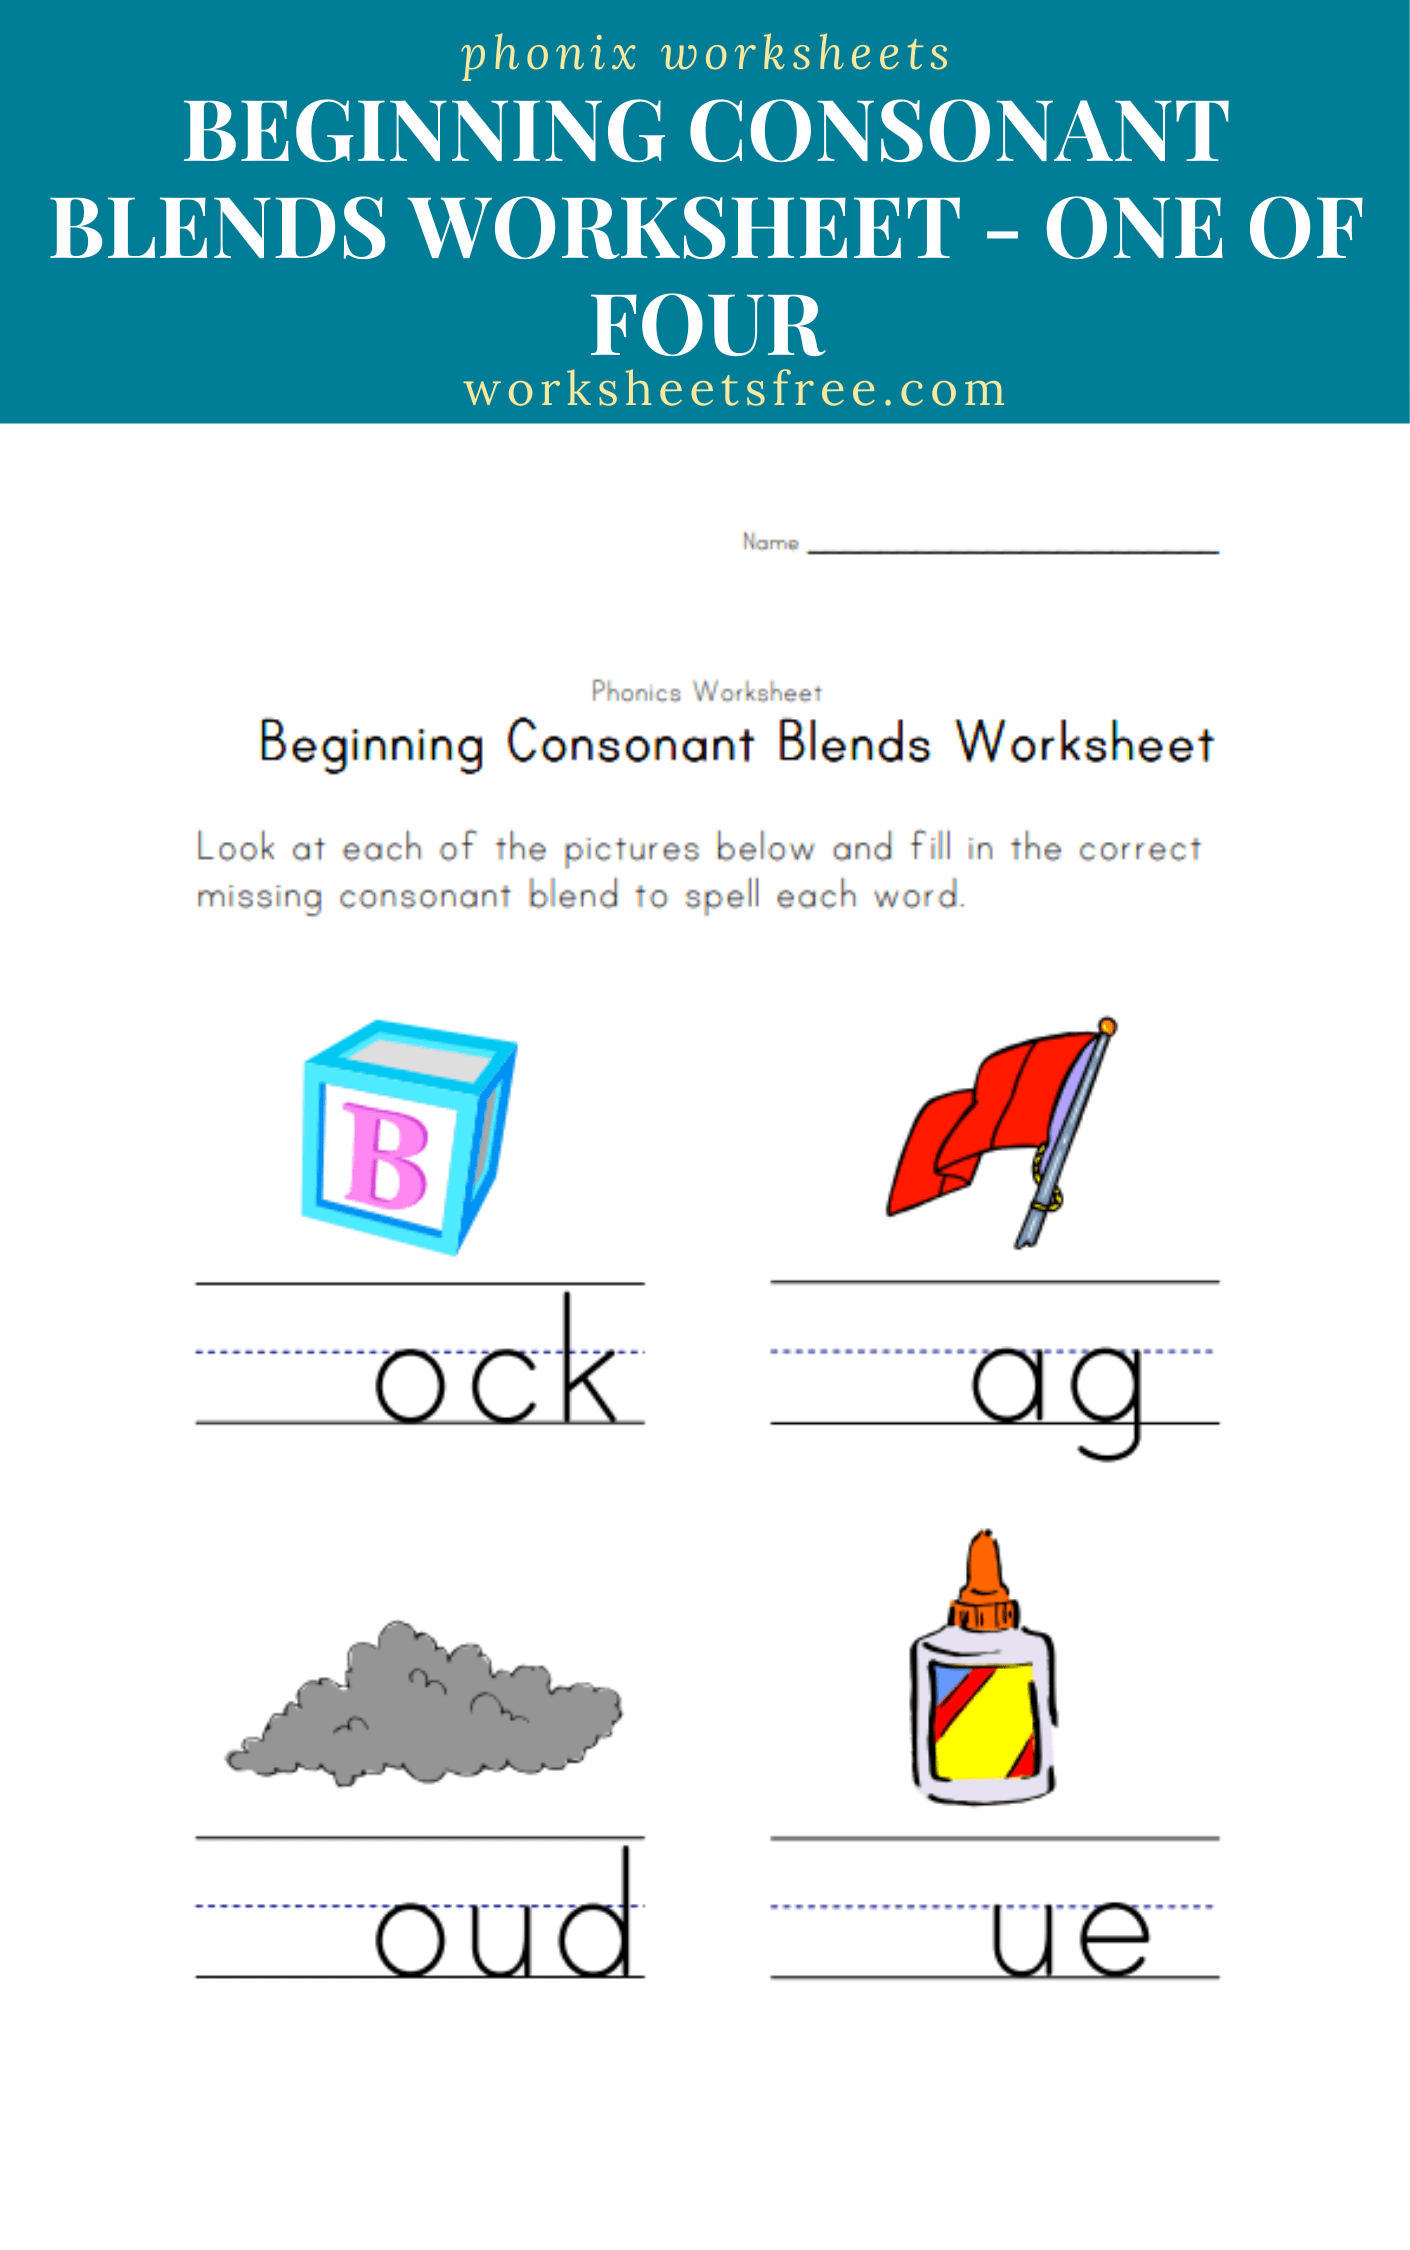 Beginning-Consonant-Blends-Worksheet-One-of-Four   Worksheets Free [ 2250 x 1410 Pixel ]